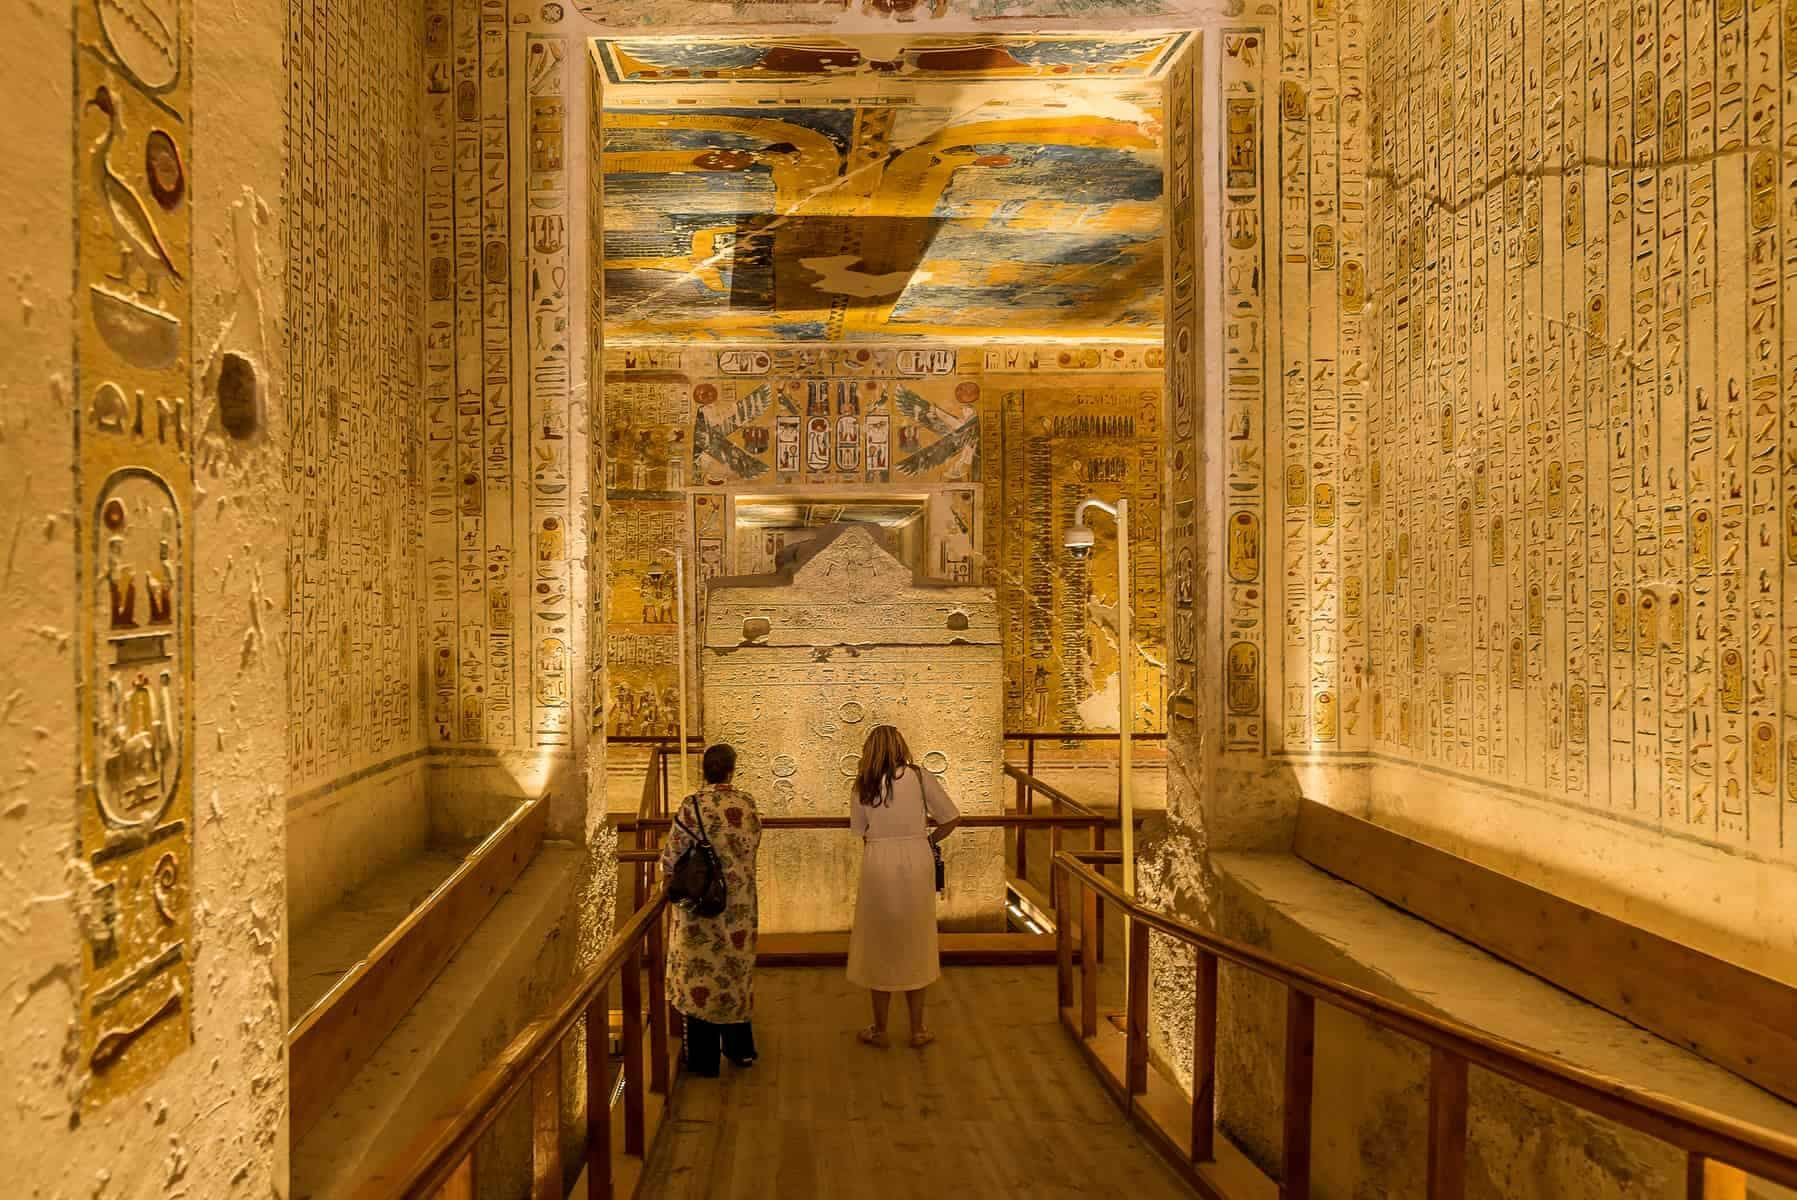 Two turists in the interior of the tomb KV 2 Ramses IV in the valley of the kings, Luxor, Egypt, October 21, 2018